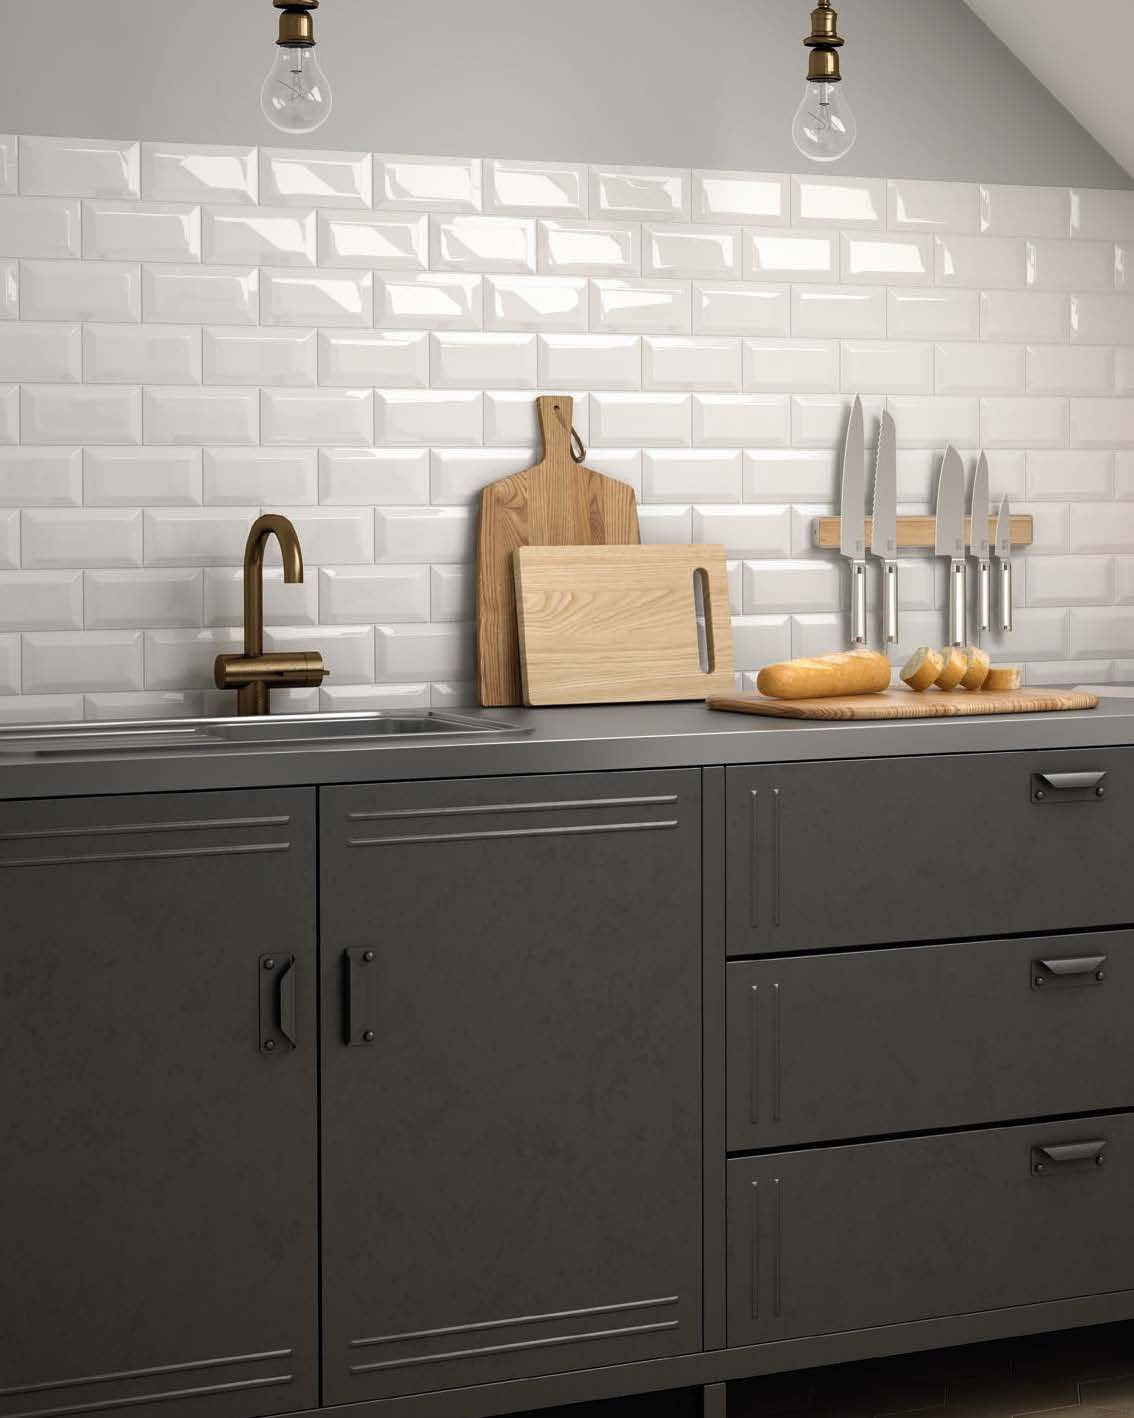 Equipe Metro White 7 5x15 Hexawood Natural 17 5x20 Country Kitchen Tiles